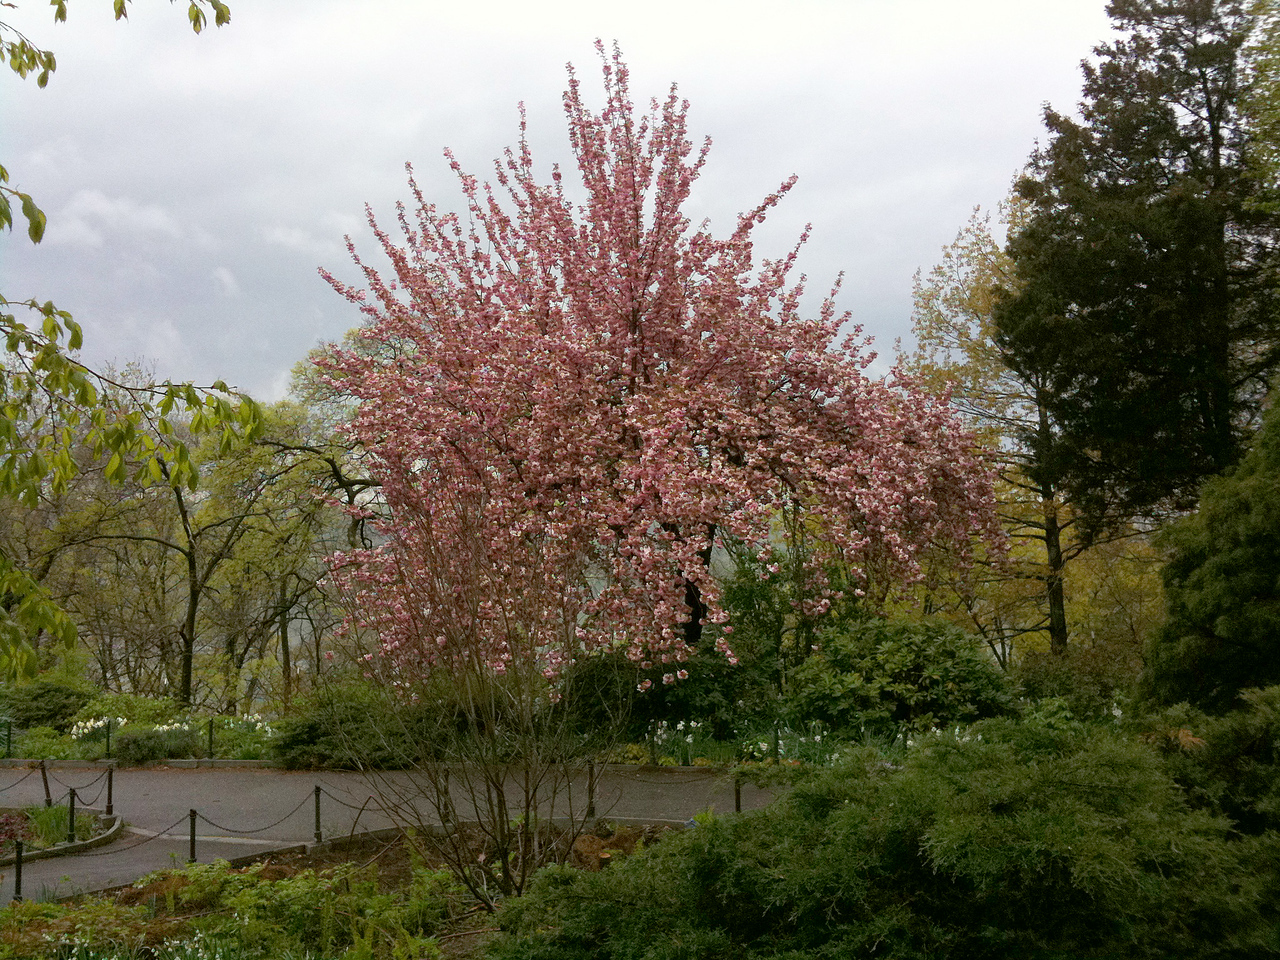 Spring in Fort Tryon Park